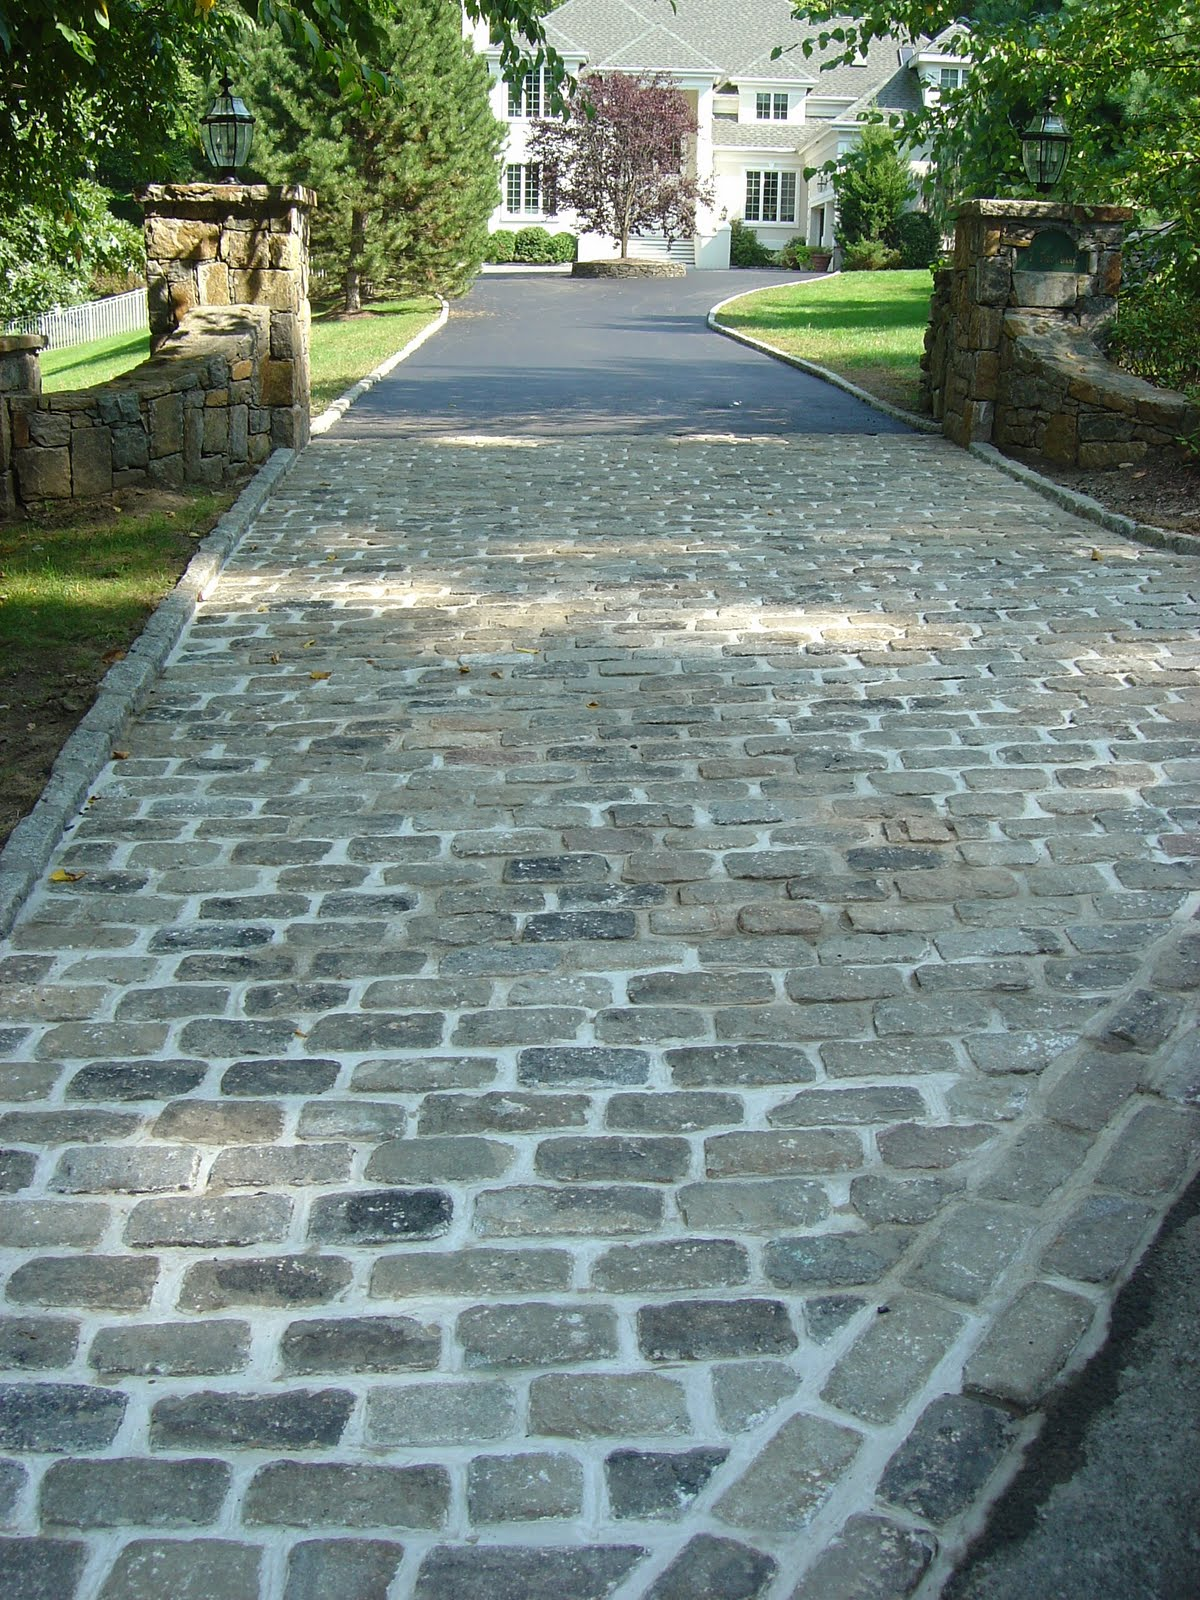 Cobblestone Stones For Driveways : Images about driveway paving ideas on pinterest